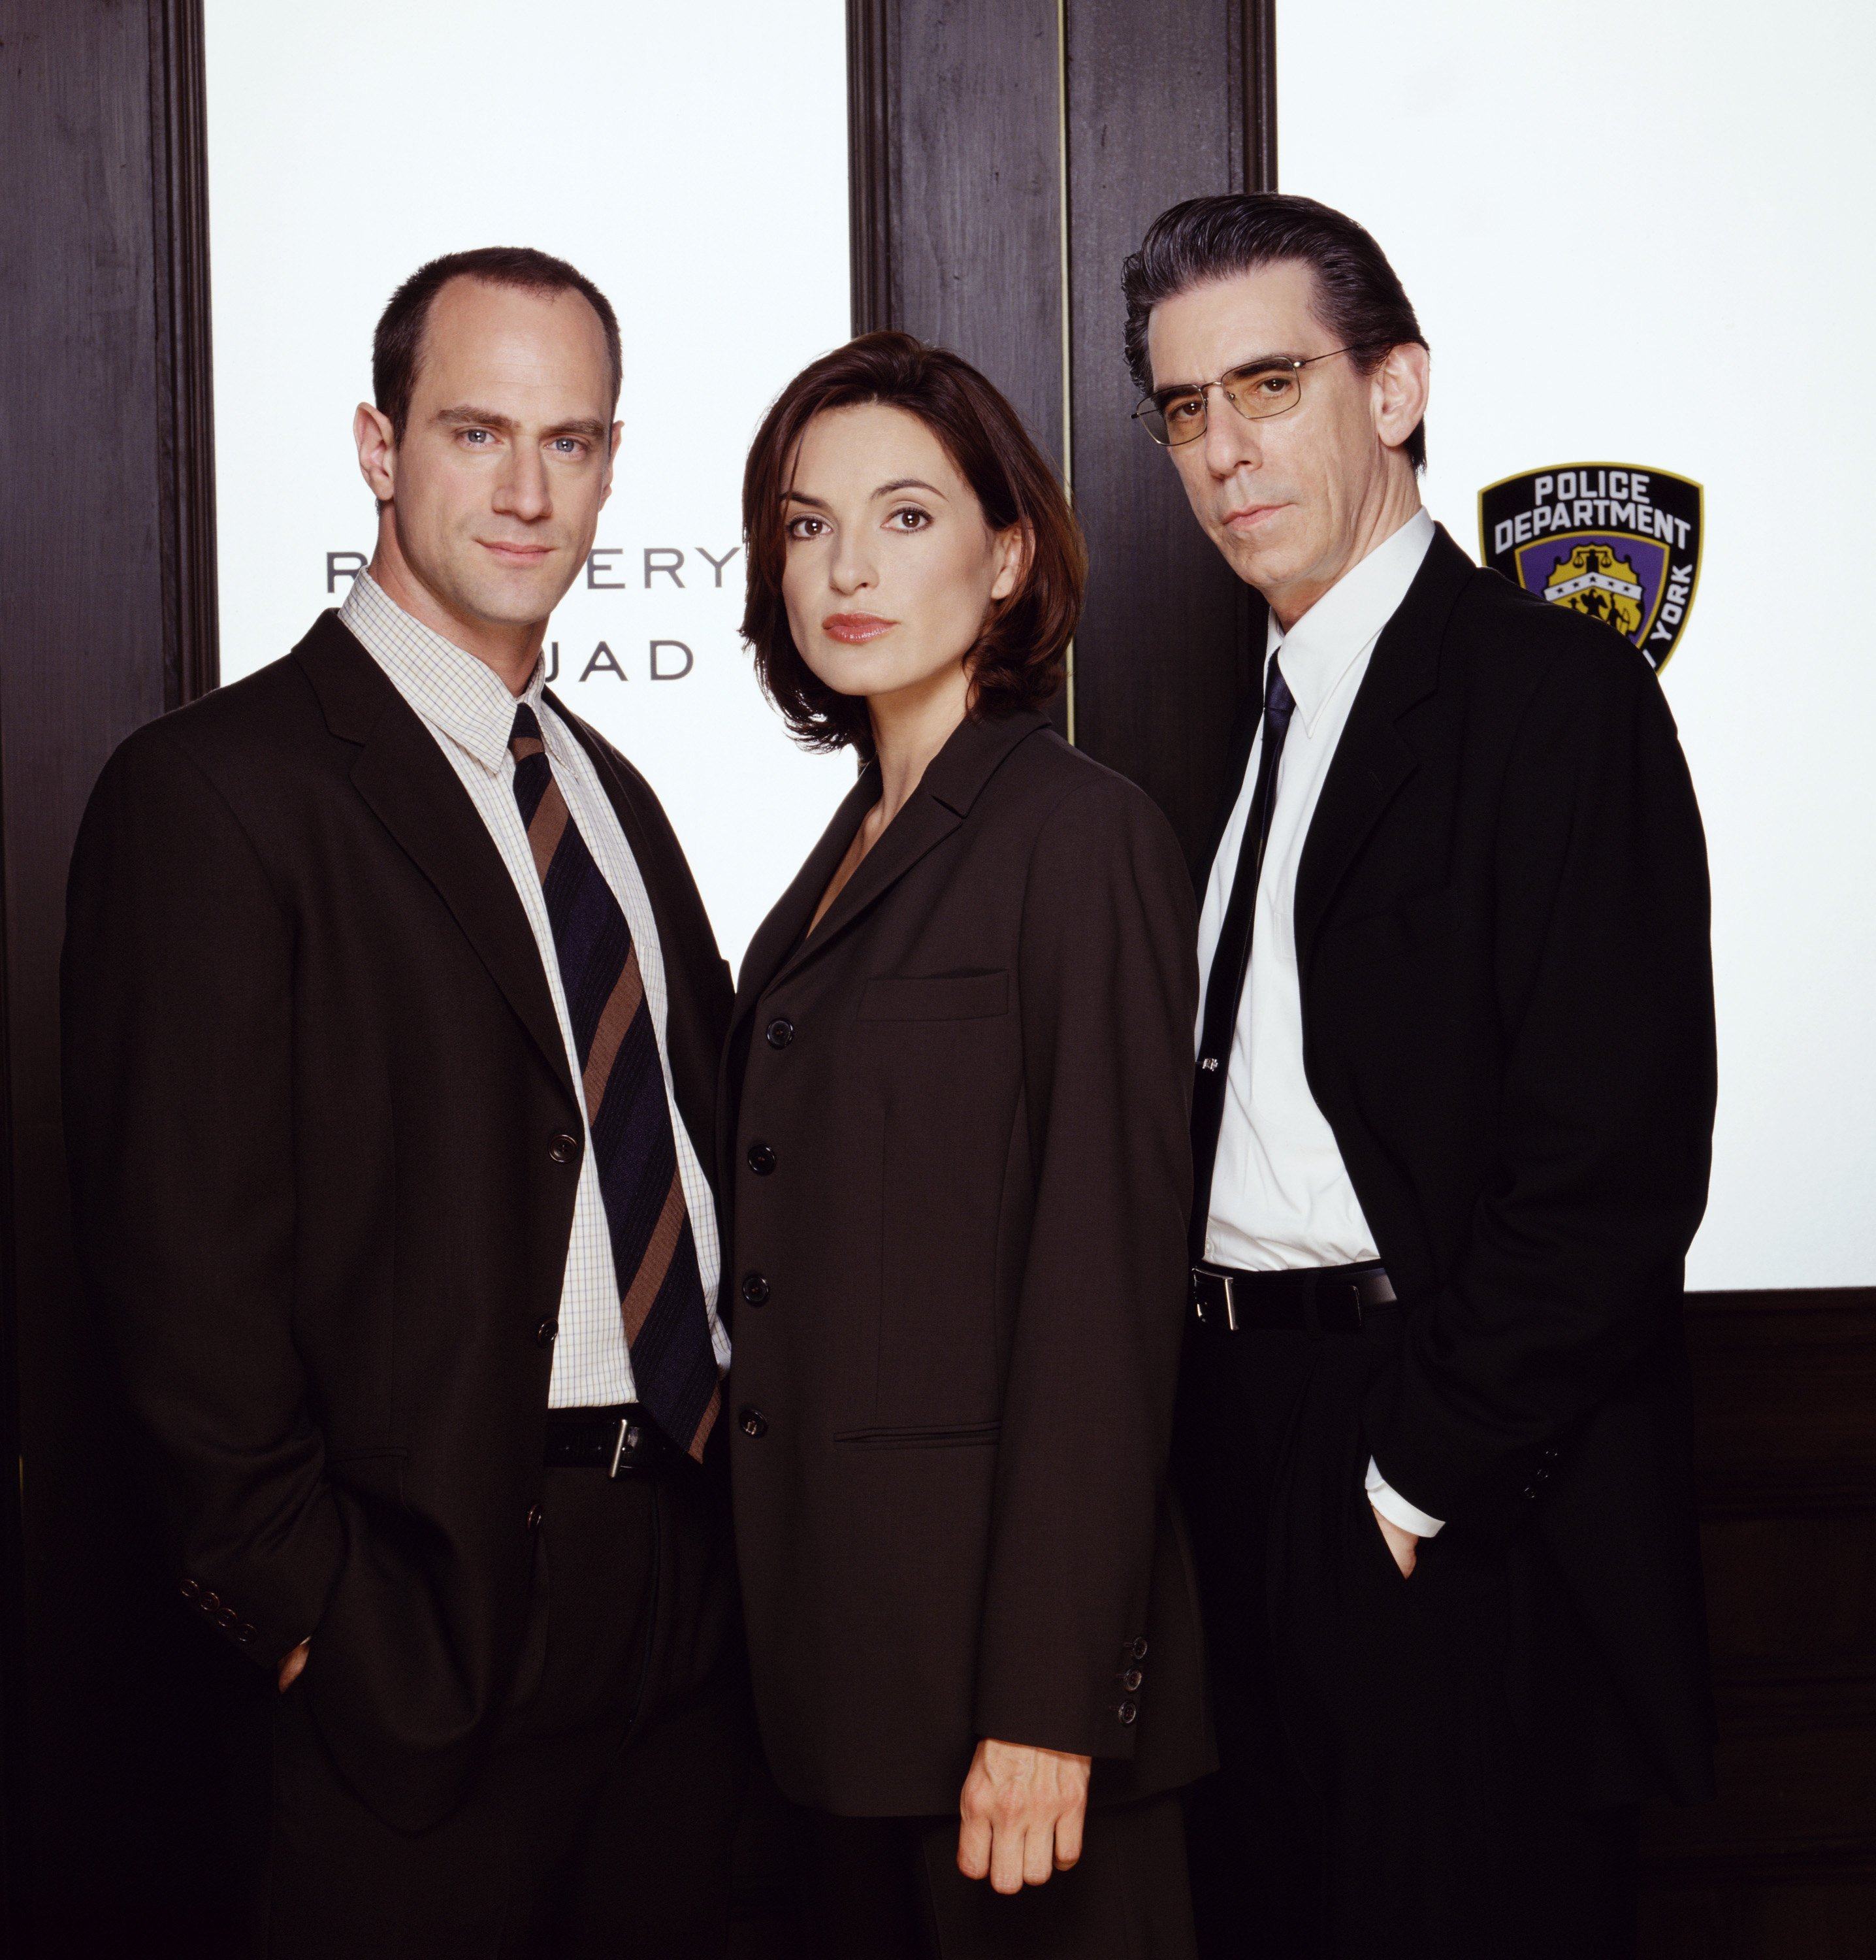 """Christopher Meloni, Mariska Hargitay, and John Much on """"Law & Order: Special Victims Unit"""" Season 1 